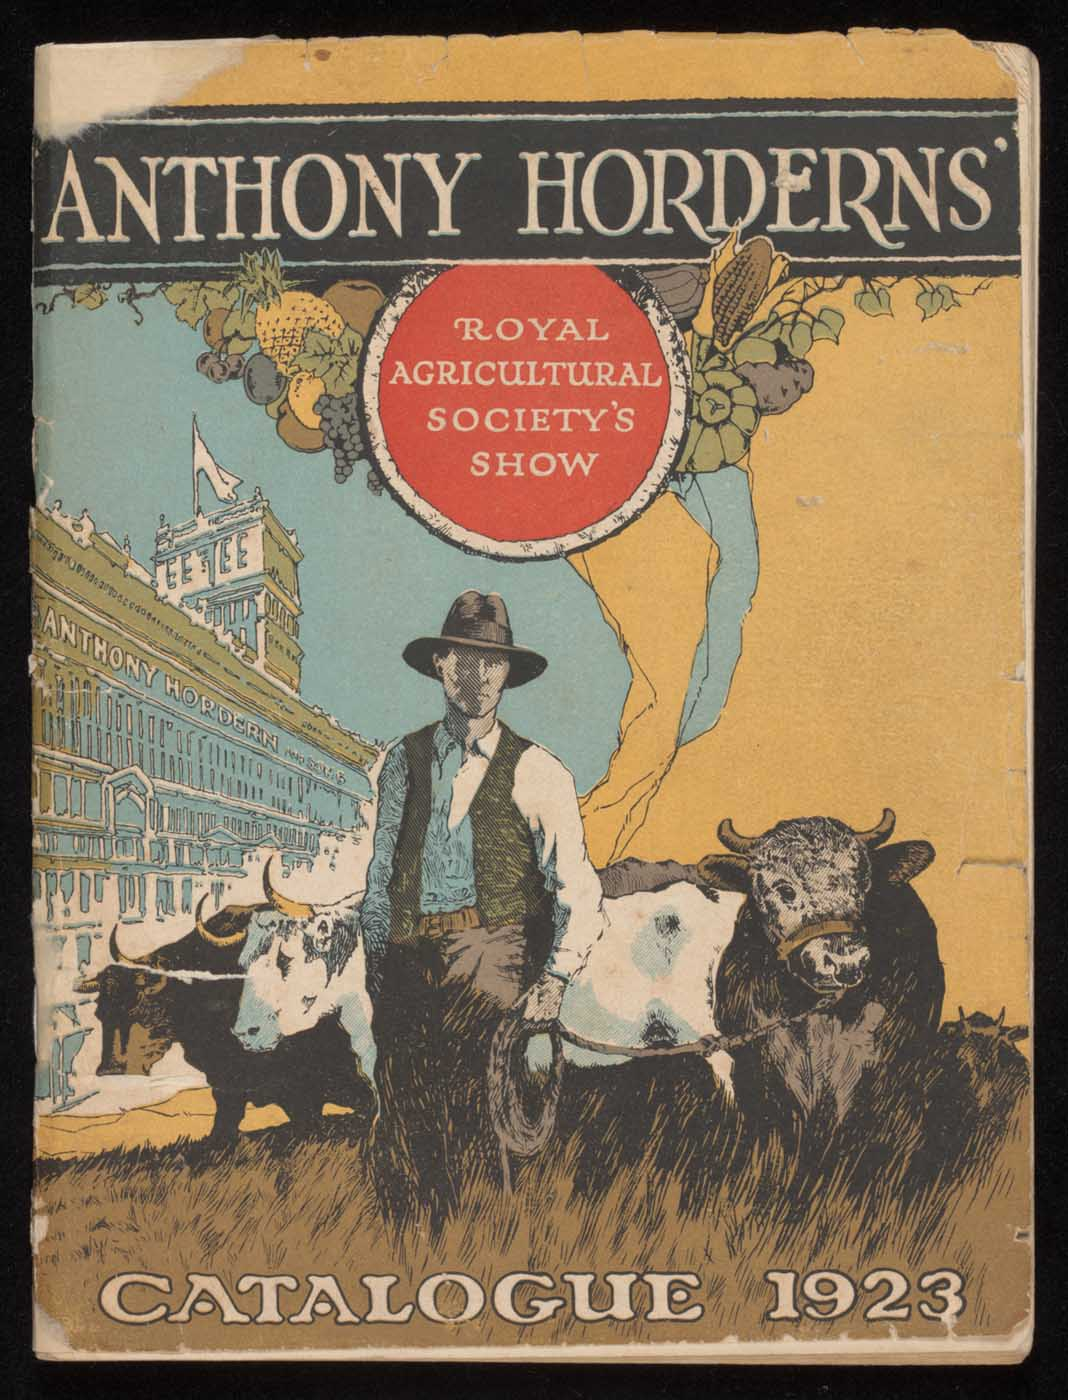 Catalogue cover showing a farmer with cattle in the foreground and Horderns store in the background. - click to view larger image